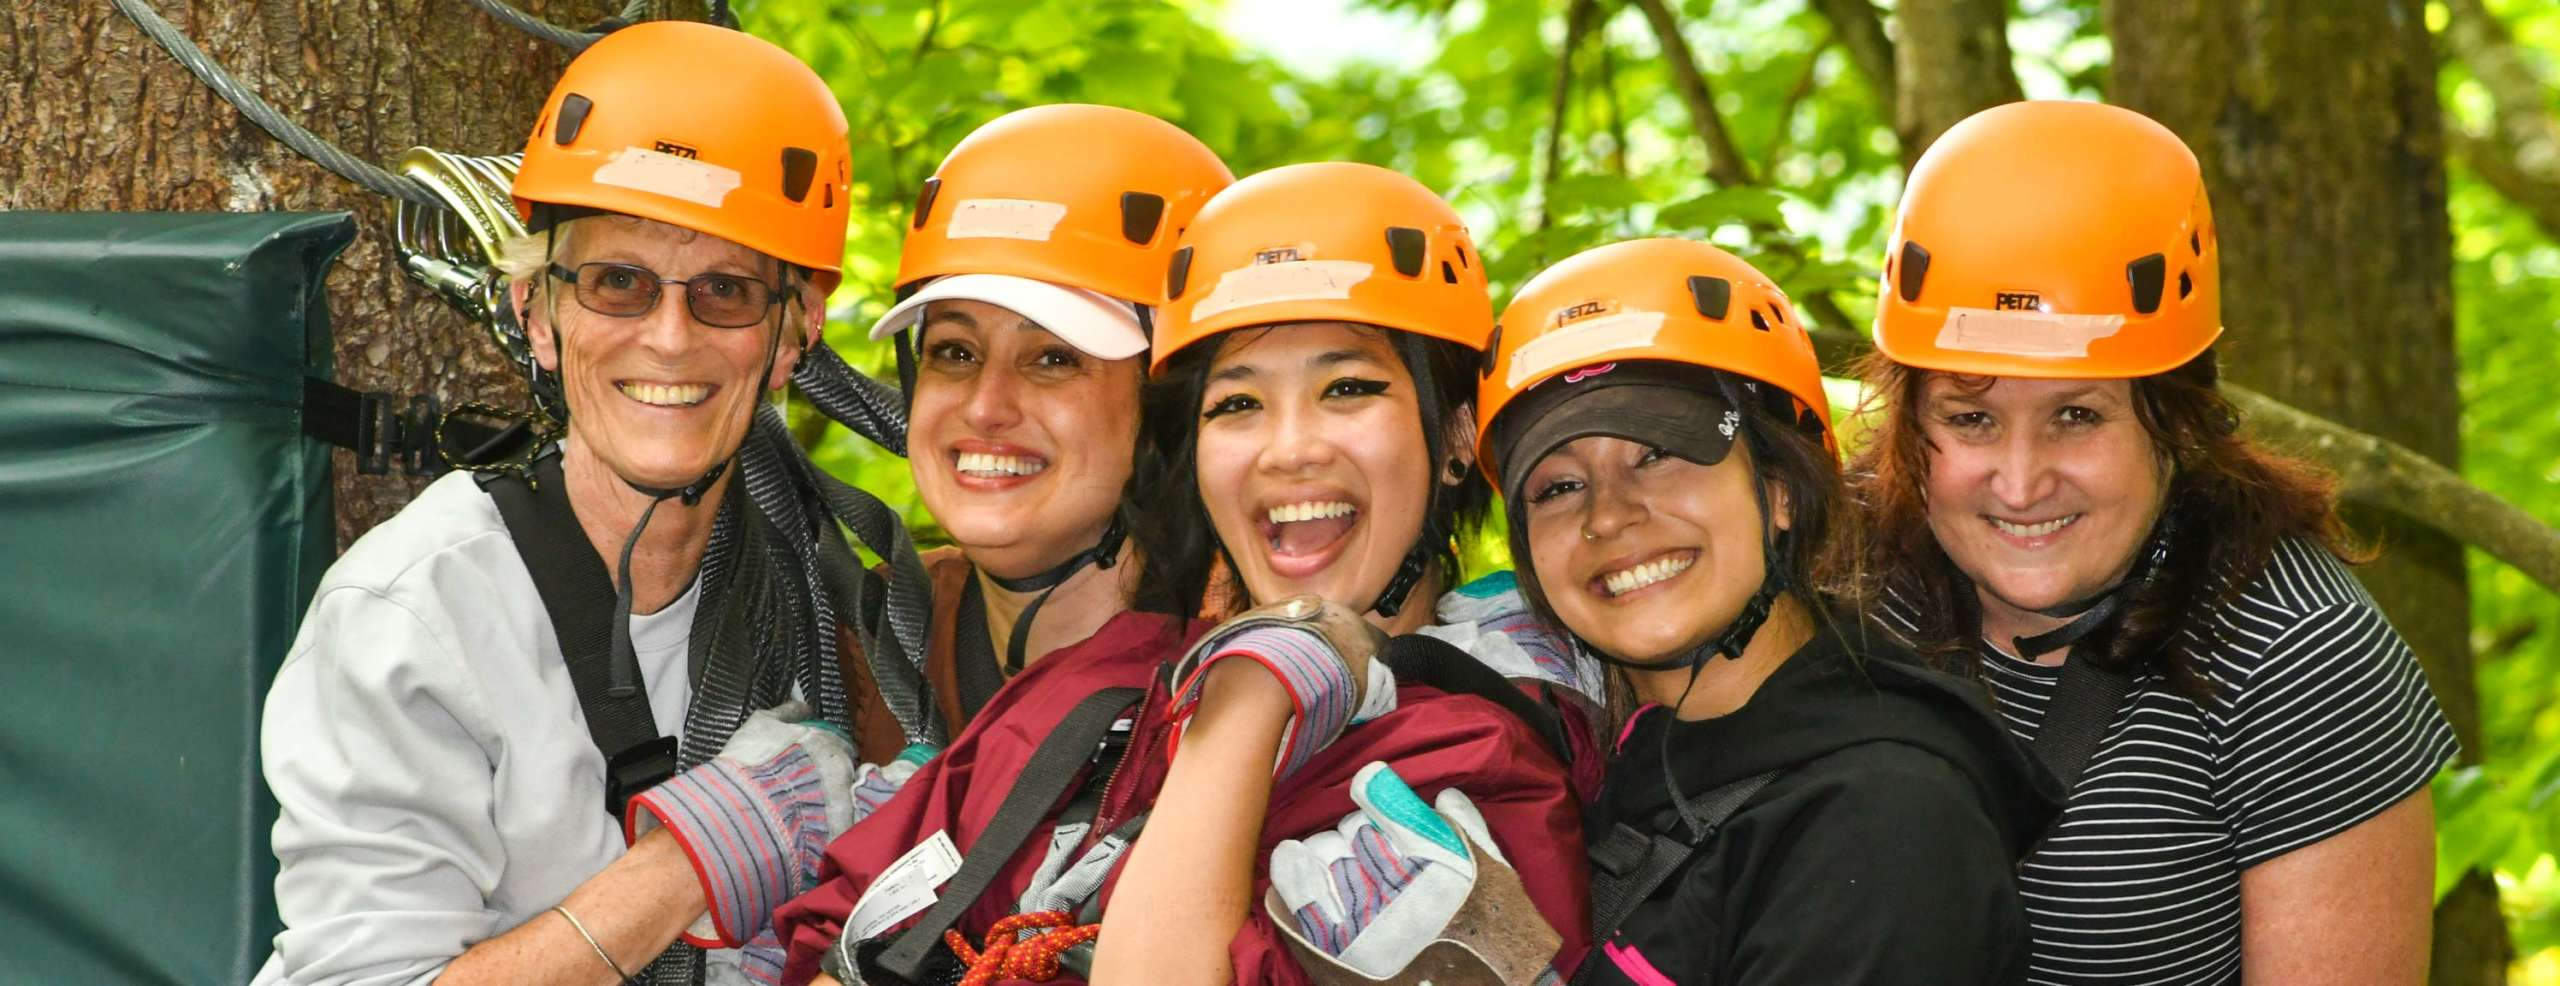 Bachelorette Group getting ready to go zip lining